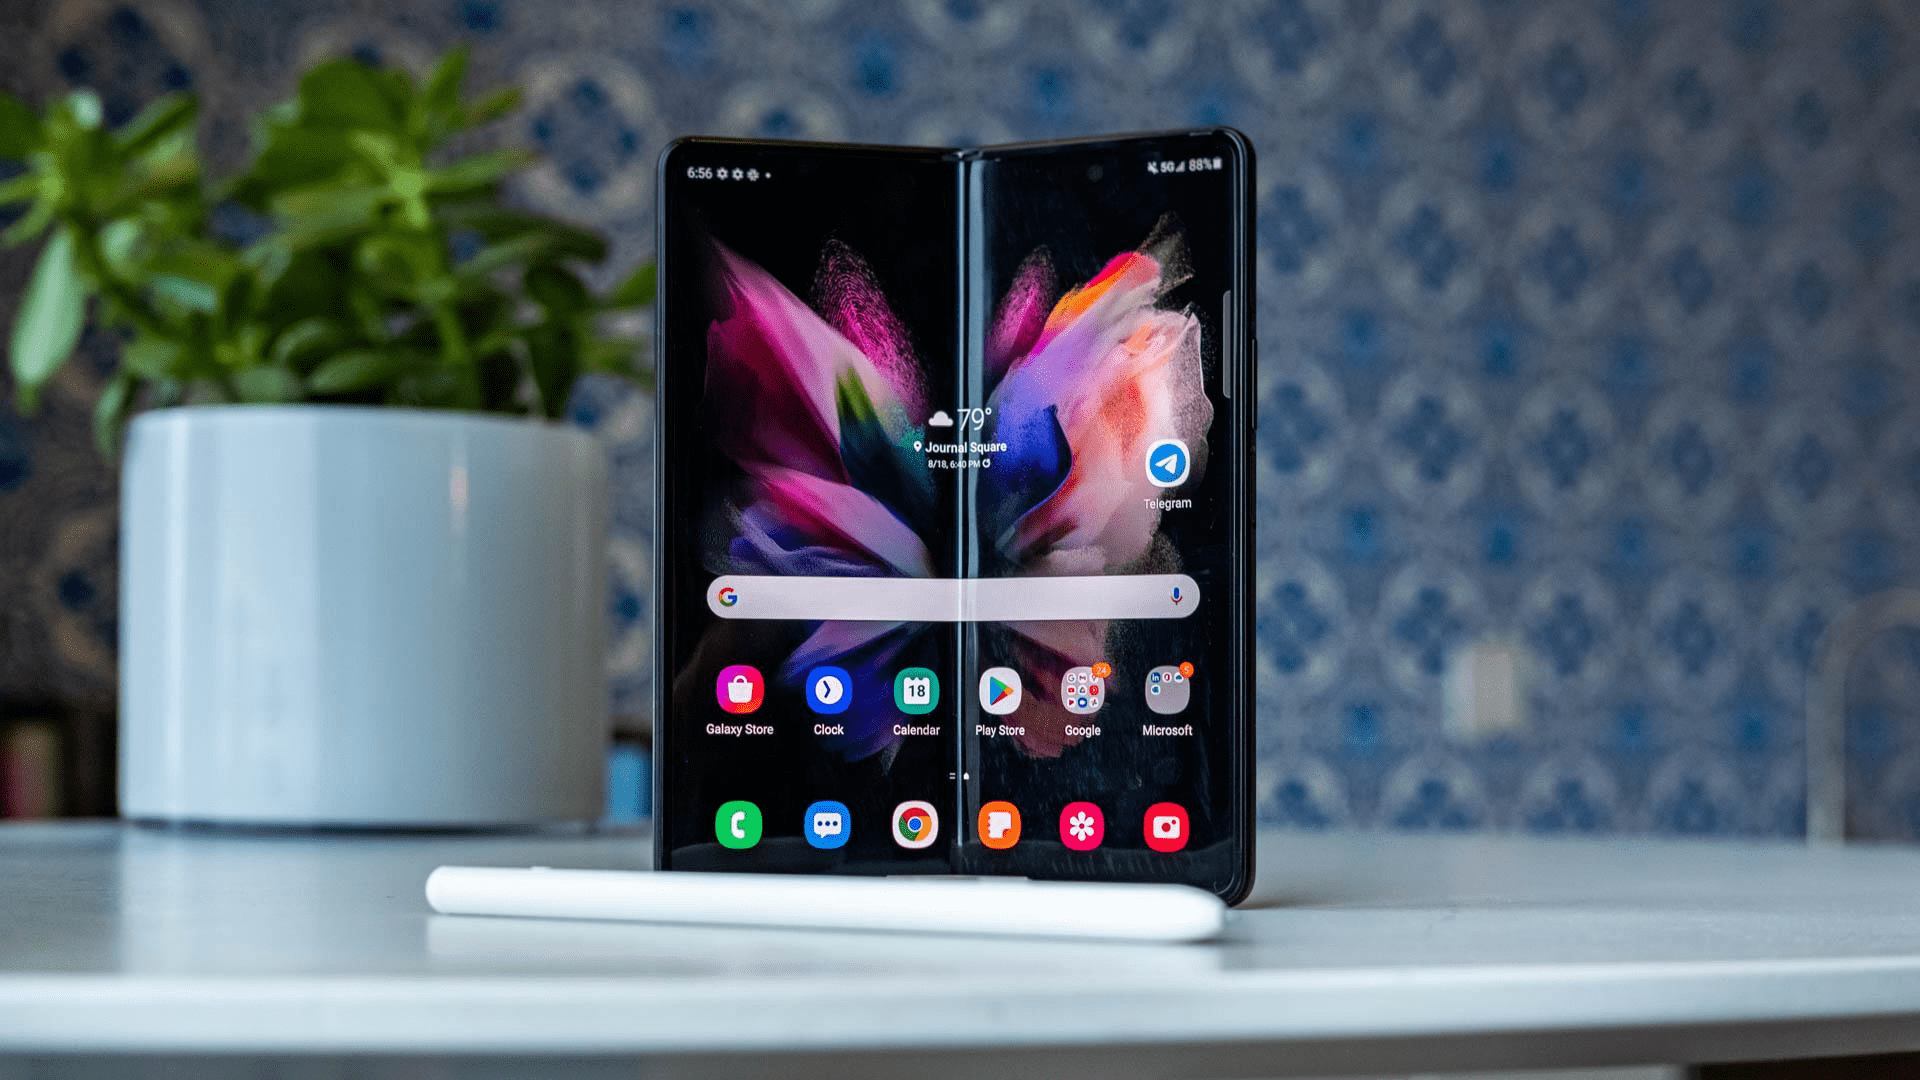 Samsung Galaxy Z Fold 3 (August 2021) - Best Upcoming Android Foldable Phones List